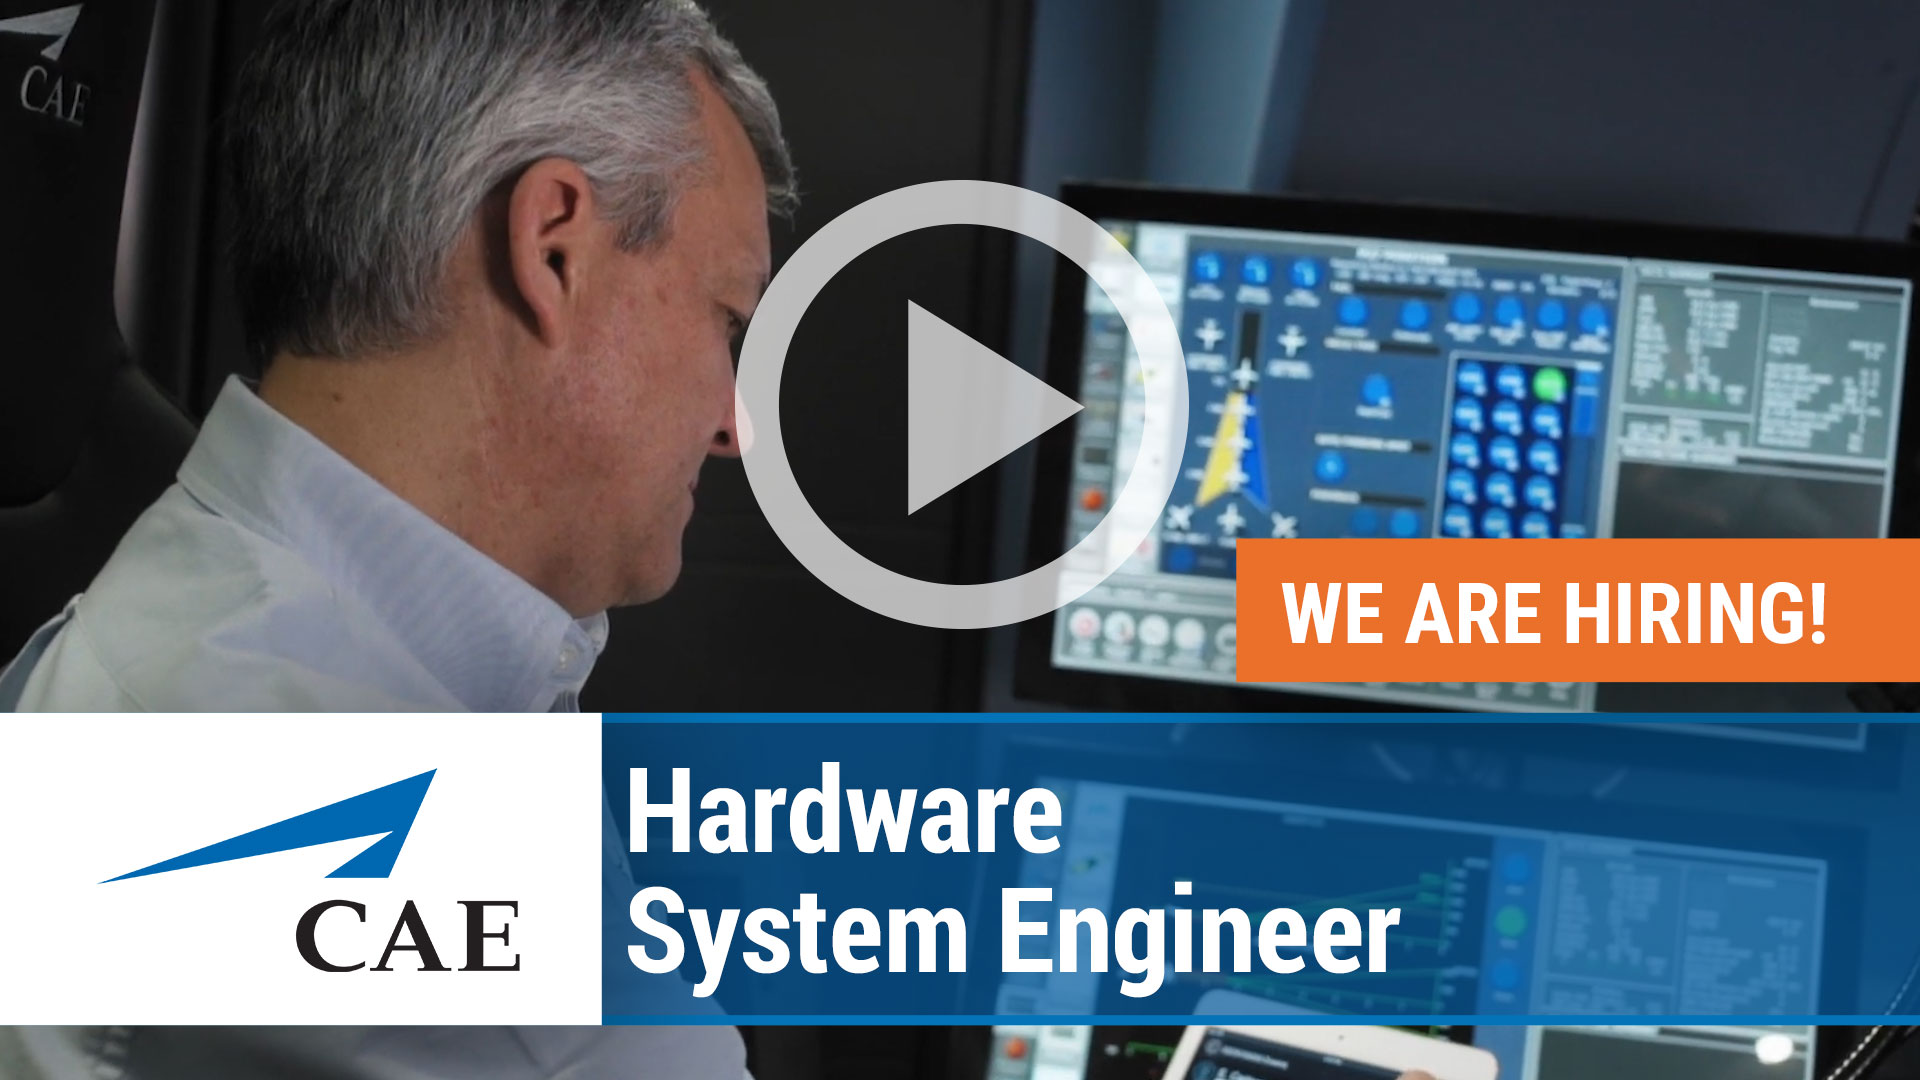 Watch our careers video for available job opening Hardware System Engineer in Varies in Europe